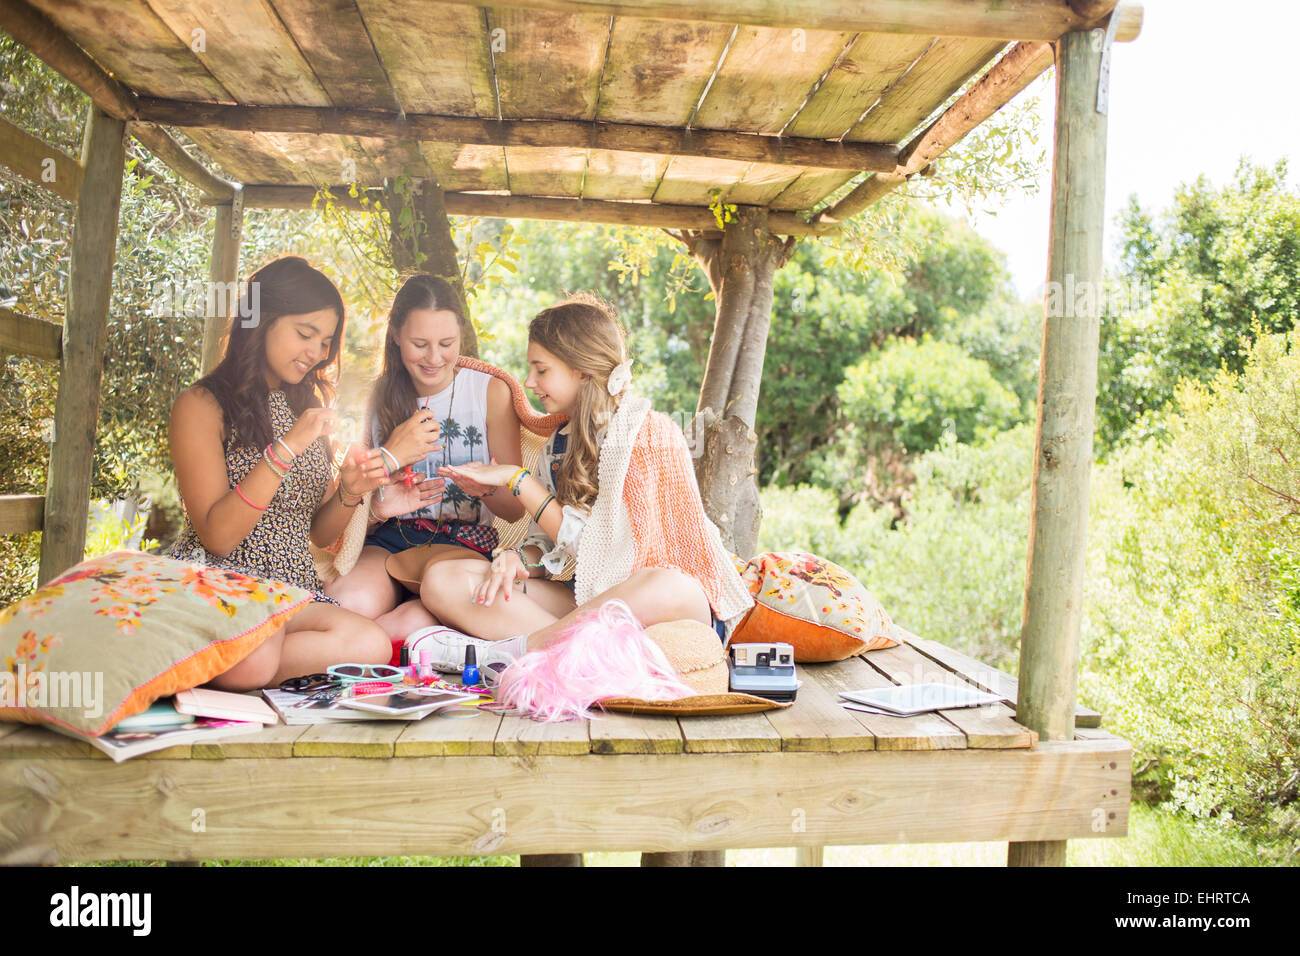 Three teenage girls playing in tree house in summer - Stock Image